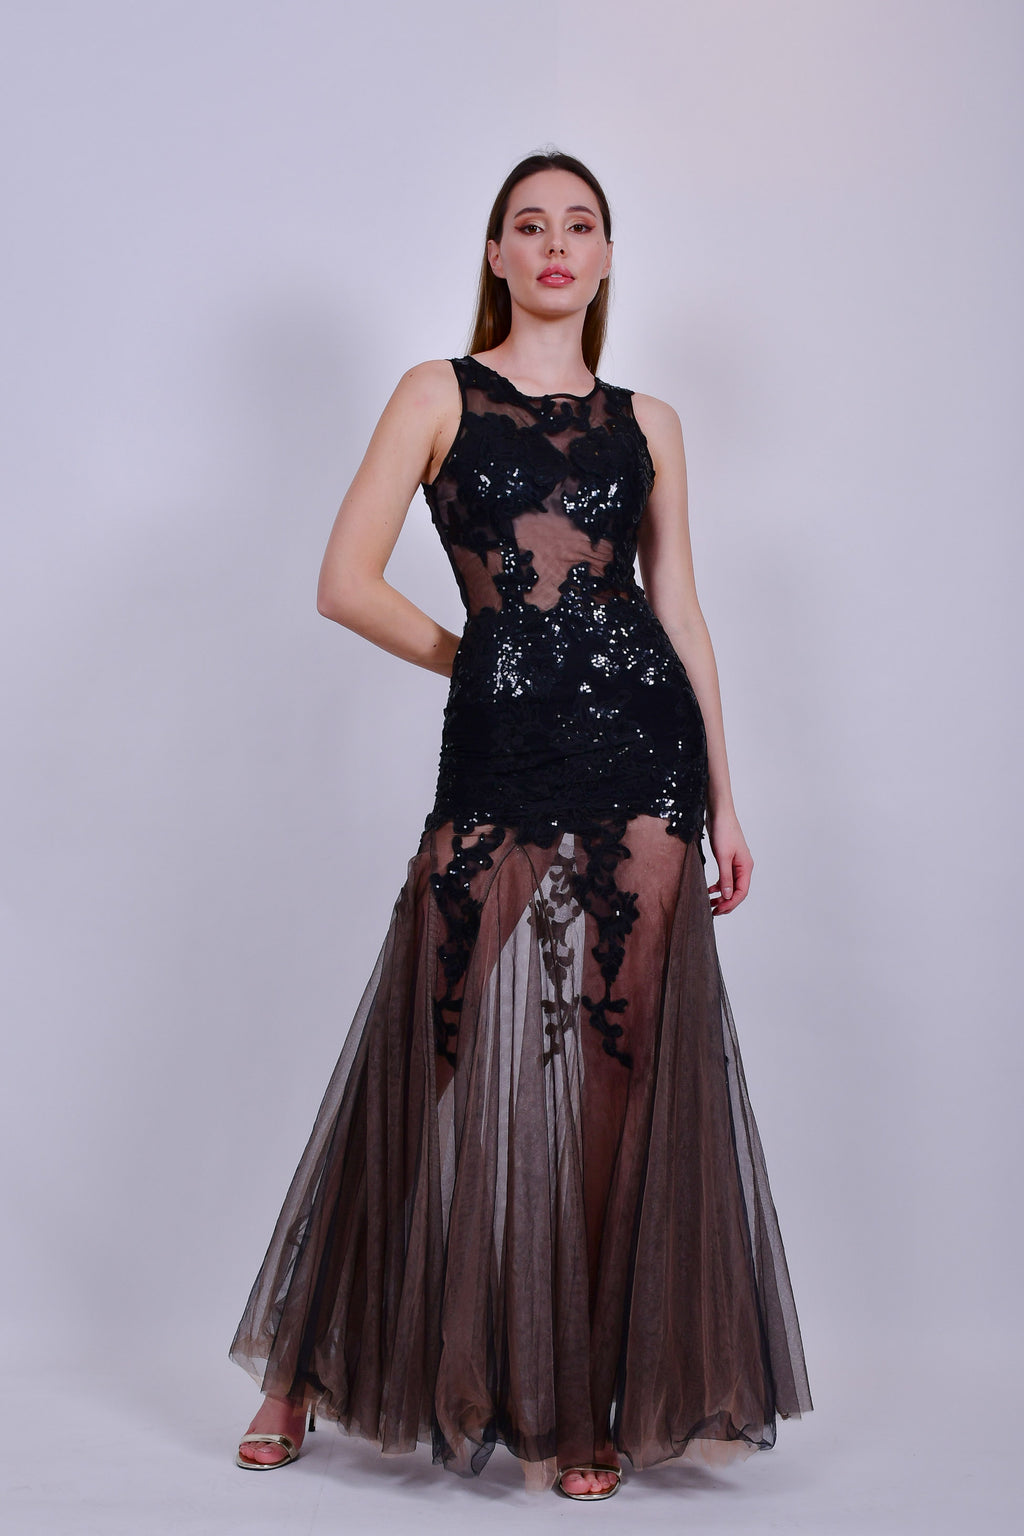 Black and Nude Sheer Dress with Appliques